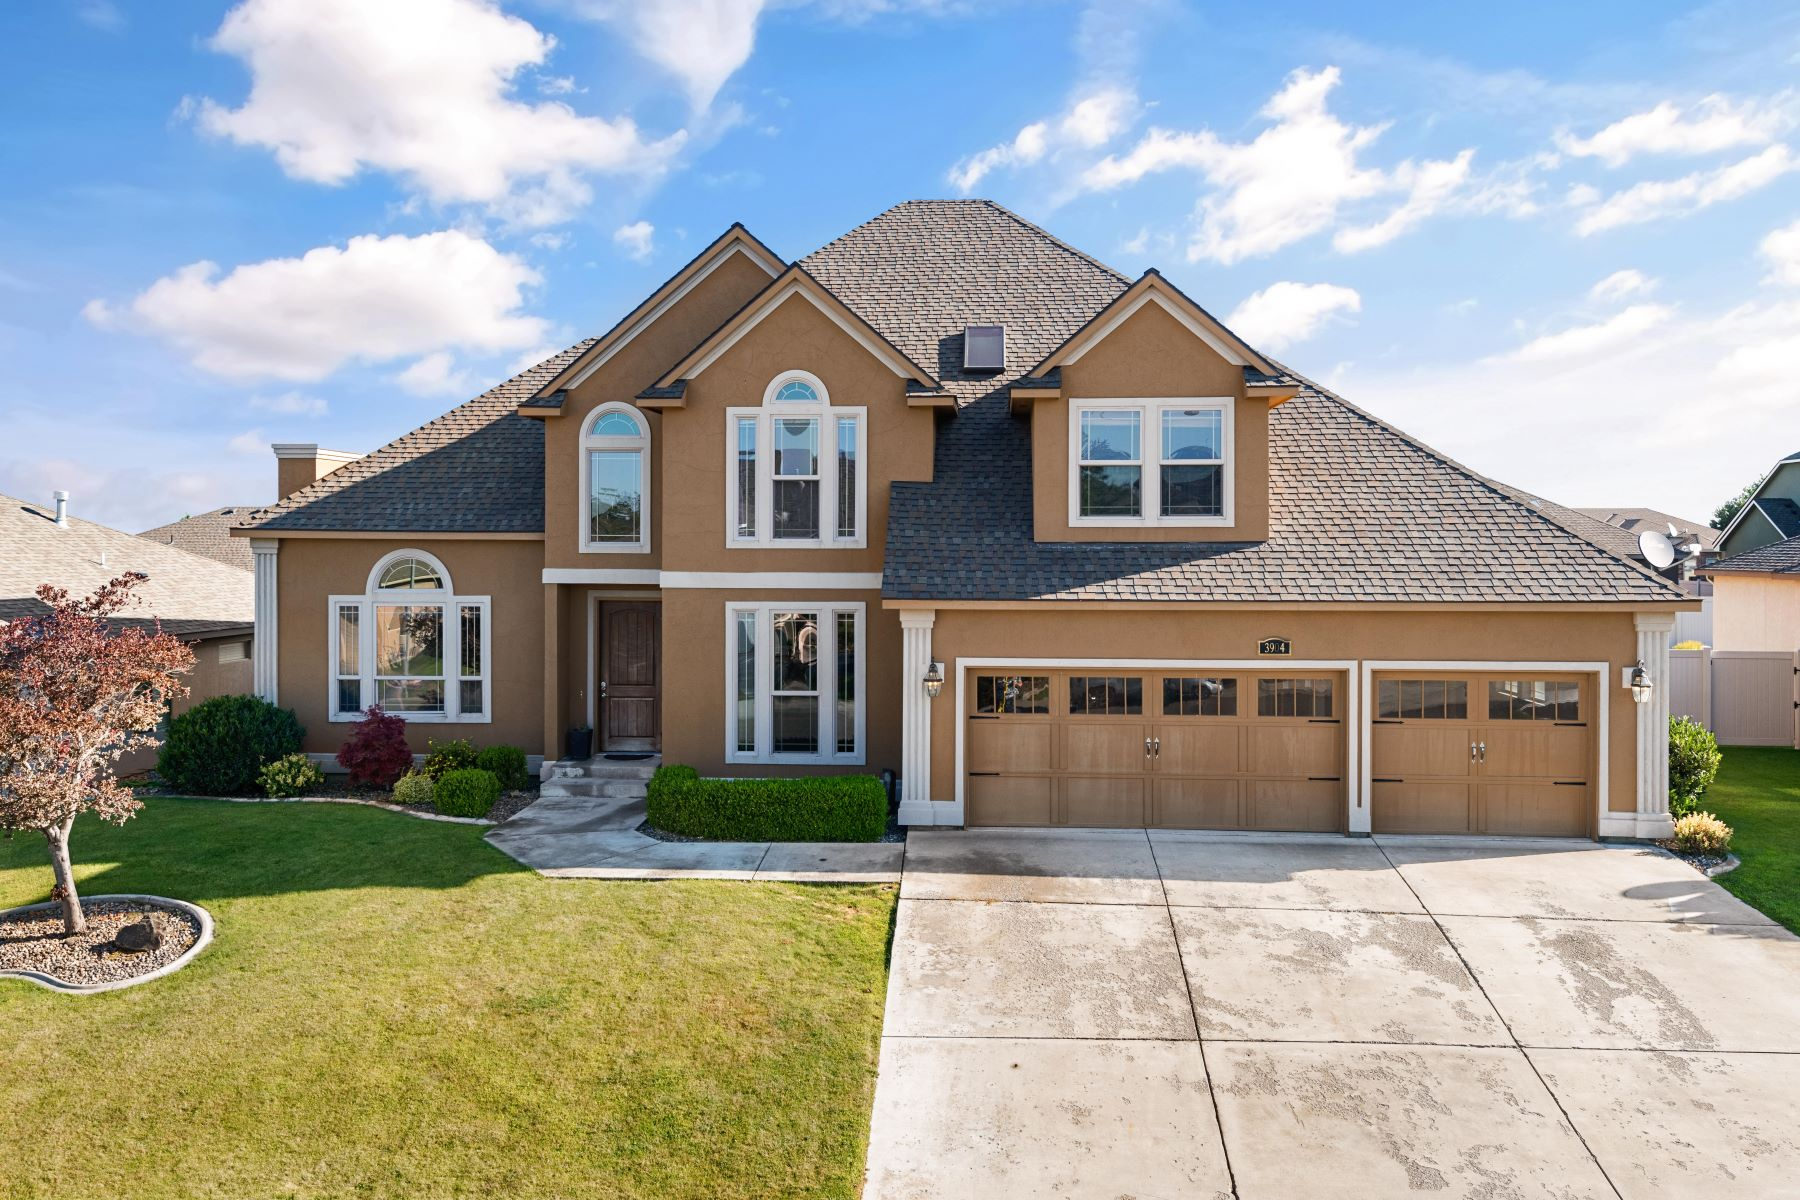 Single Family Homes for Sale at Heights at Canyon Lakes 3904 W 47th Avenue Kennewick, Washington 99337 United States